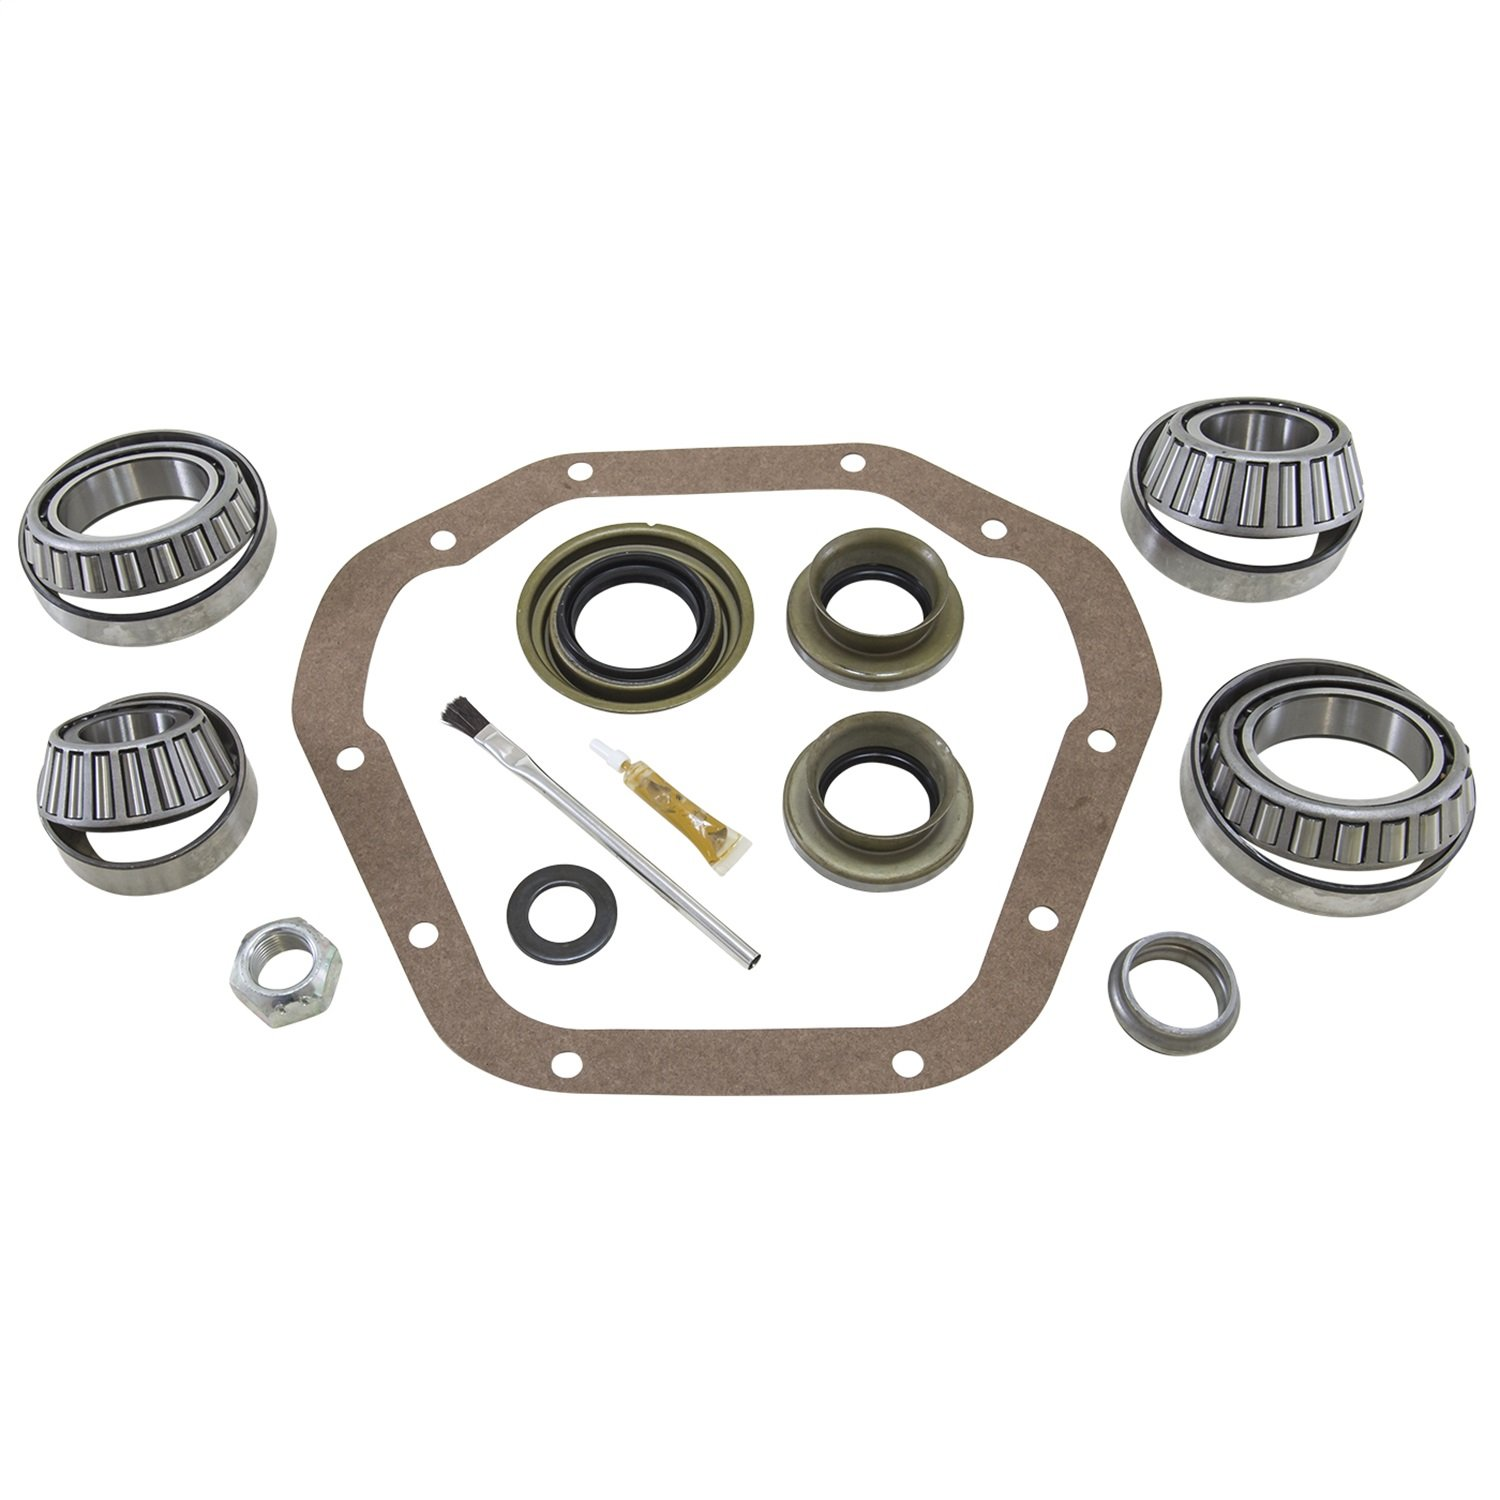 Yukon Gear & Axle (BK D60-F) Bearing Installation Kit for Dana 60 Front Differential